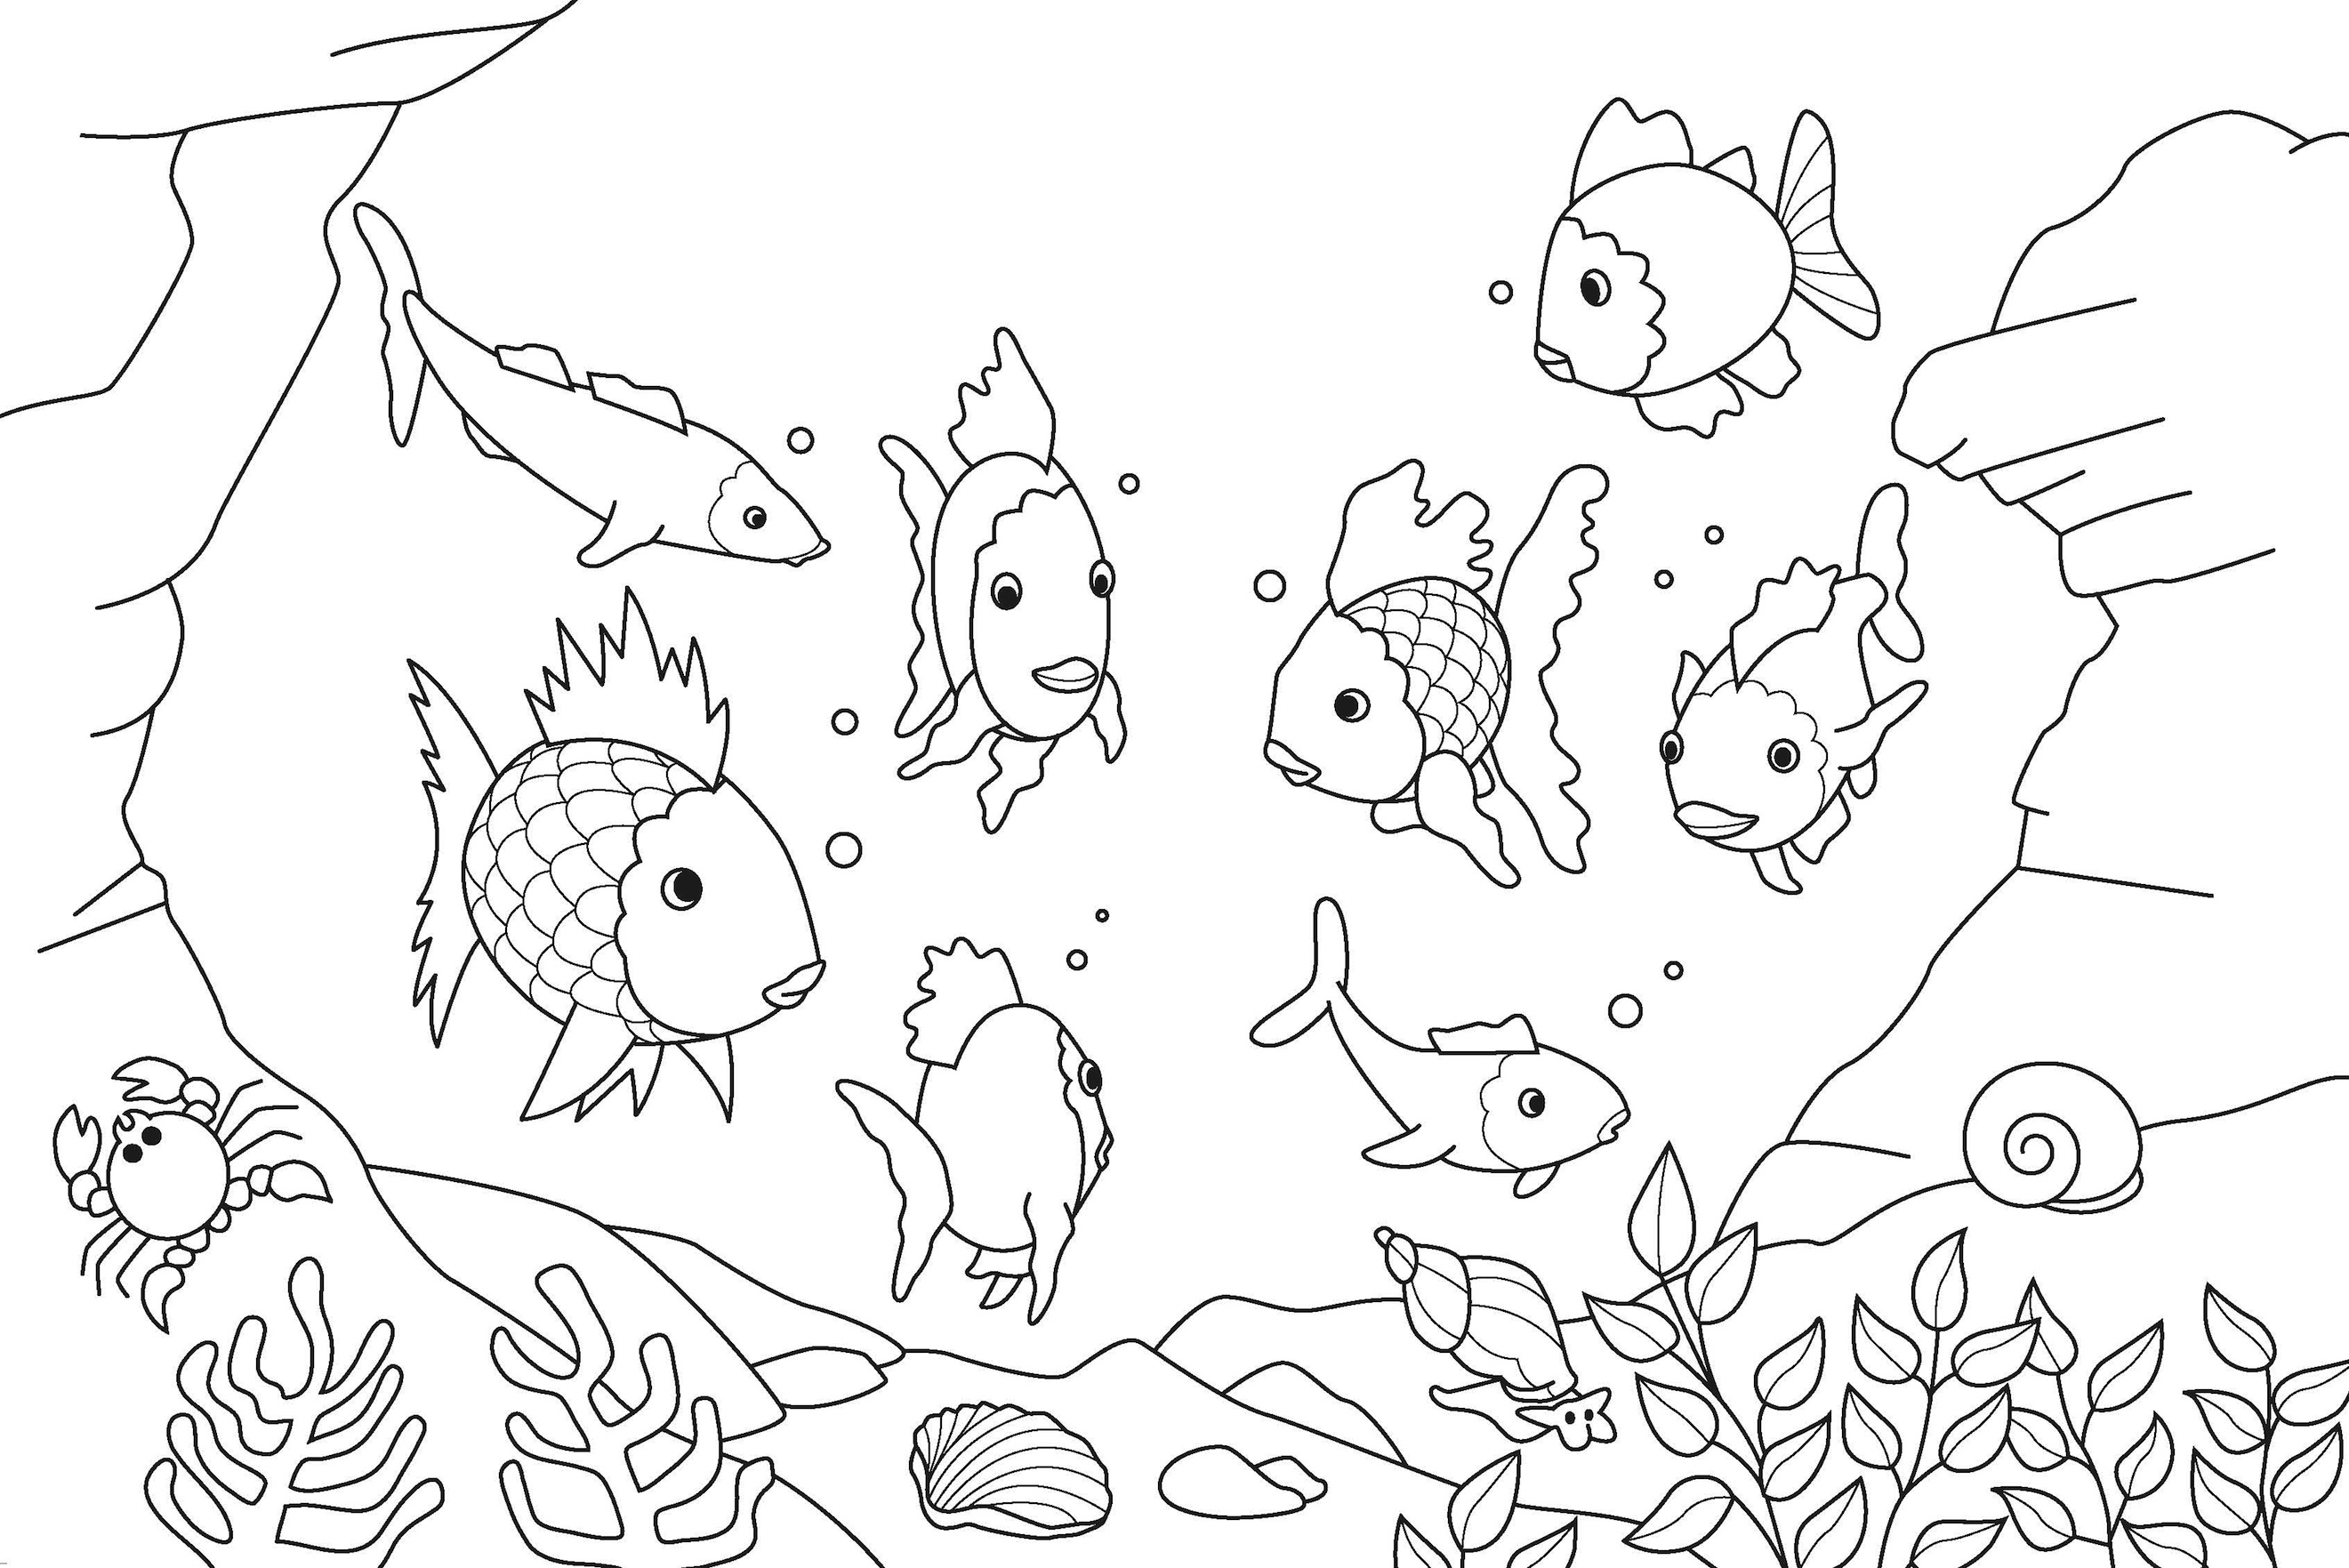 Coloring pages underwater - Coloring Pages Underwater 44